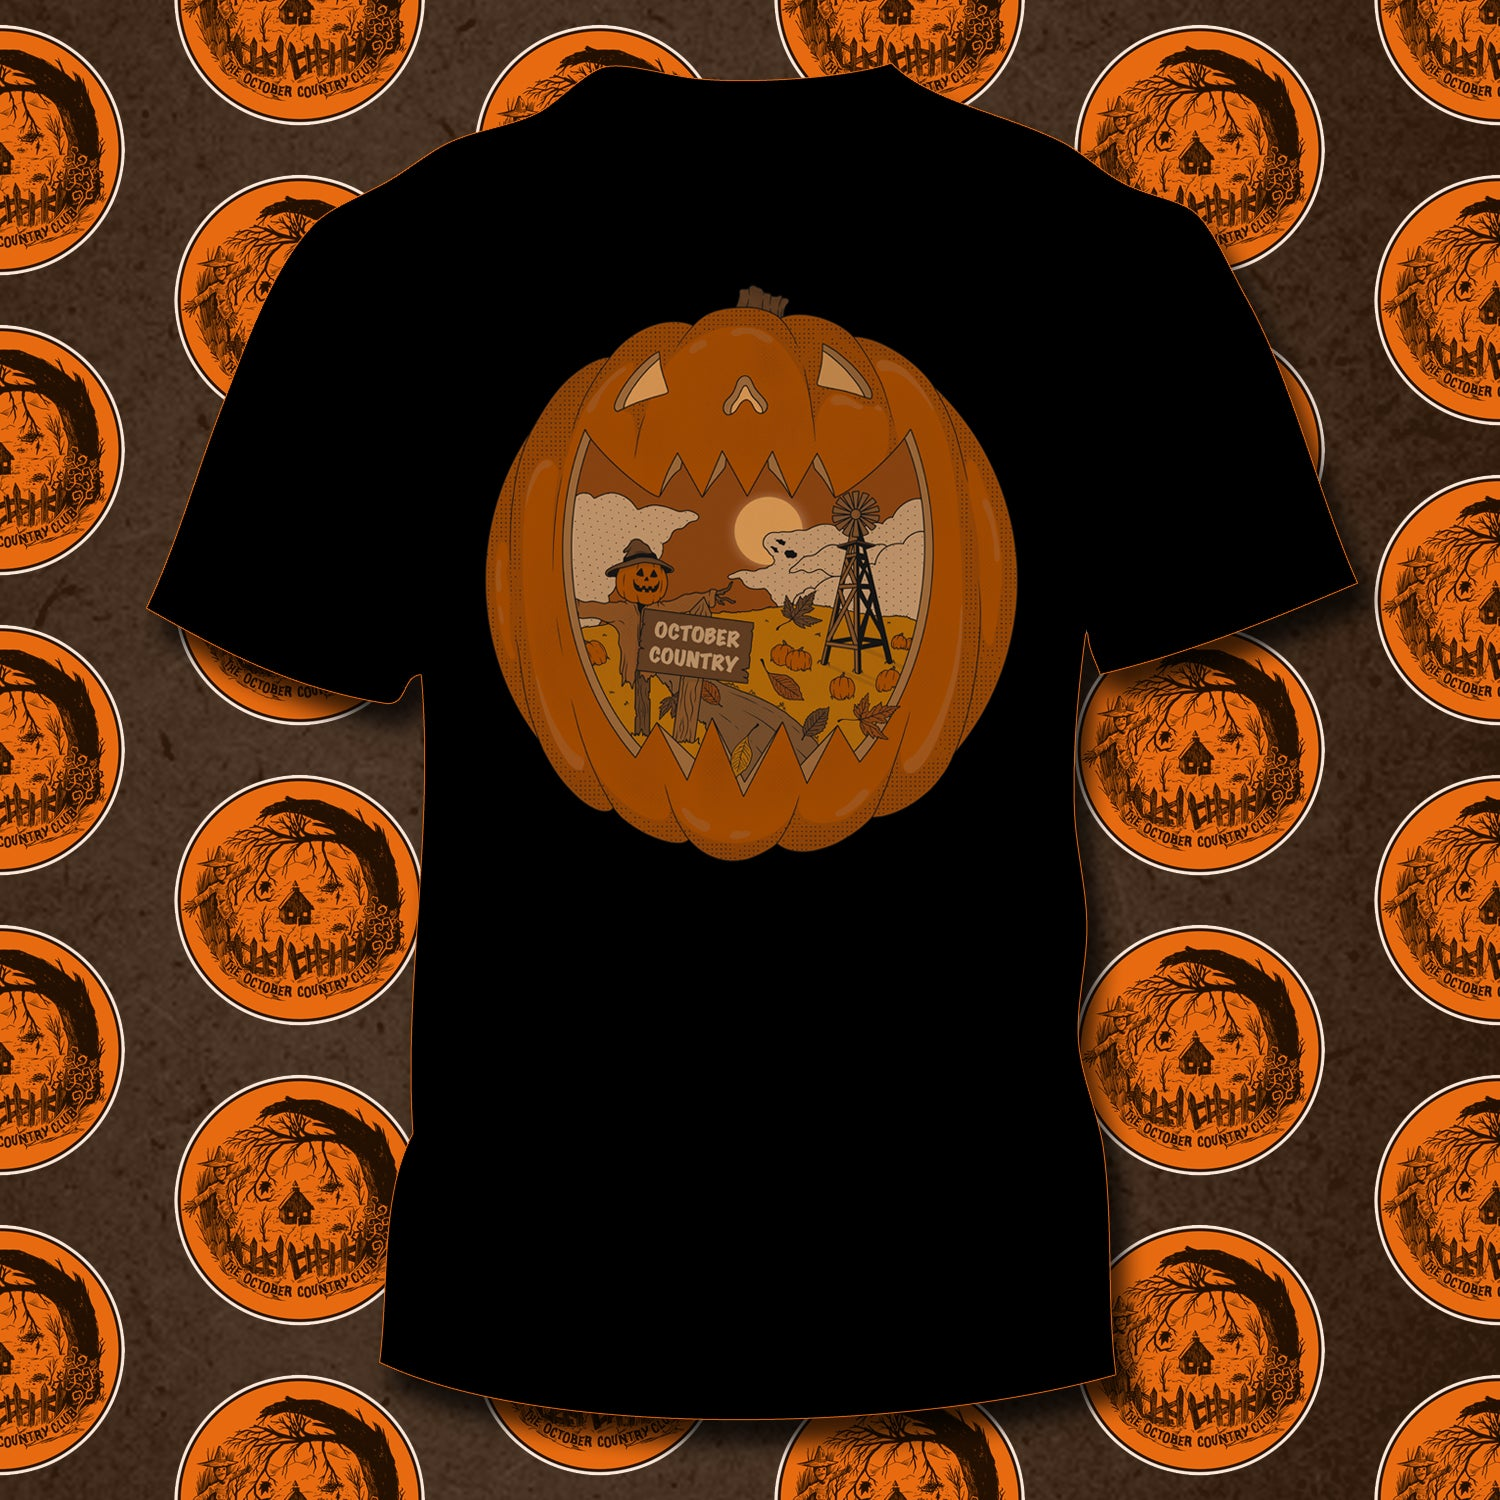 The October Country T-Shirt